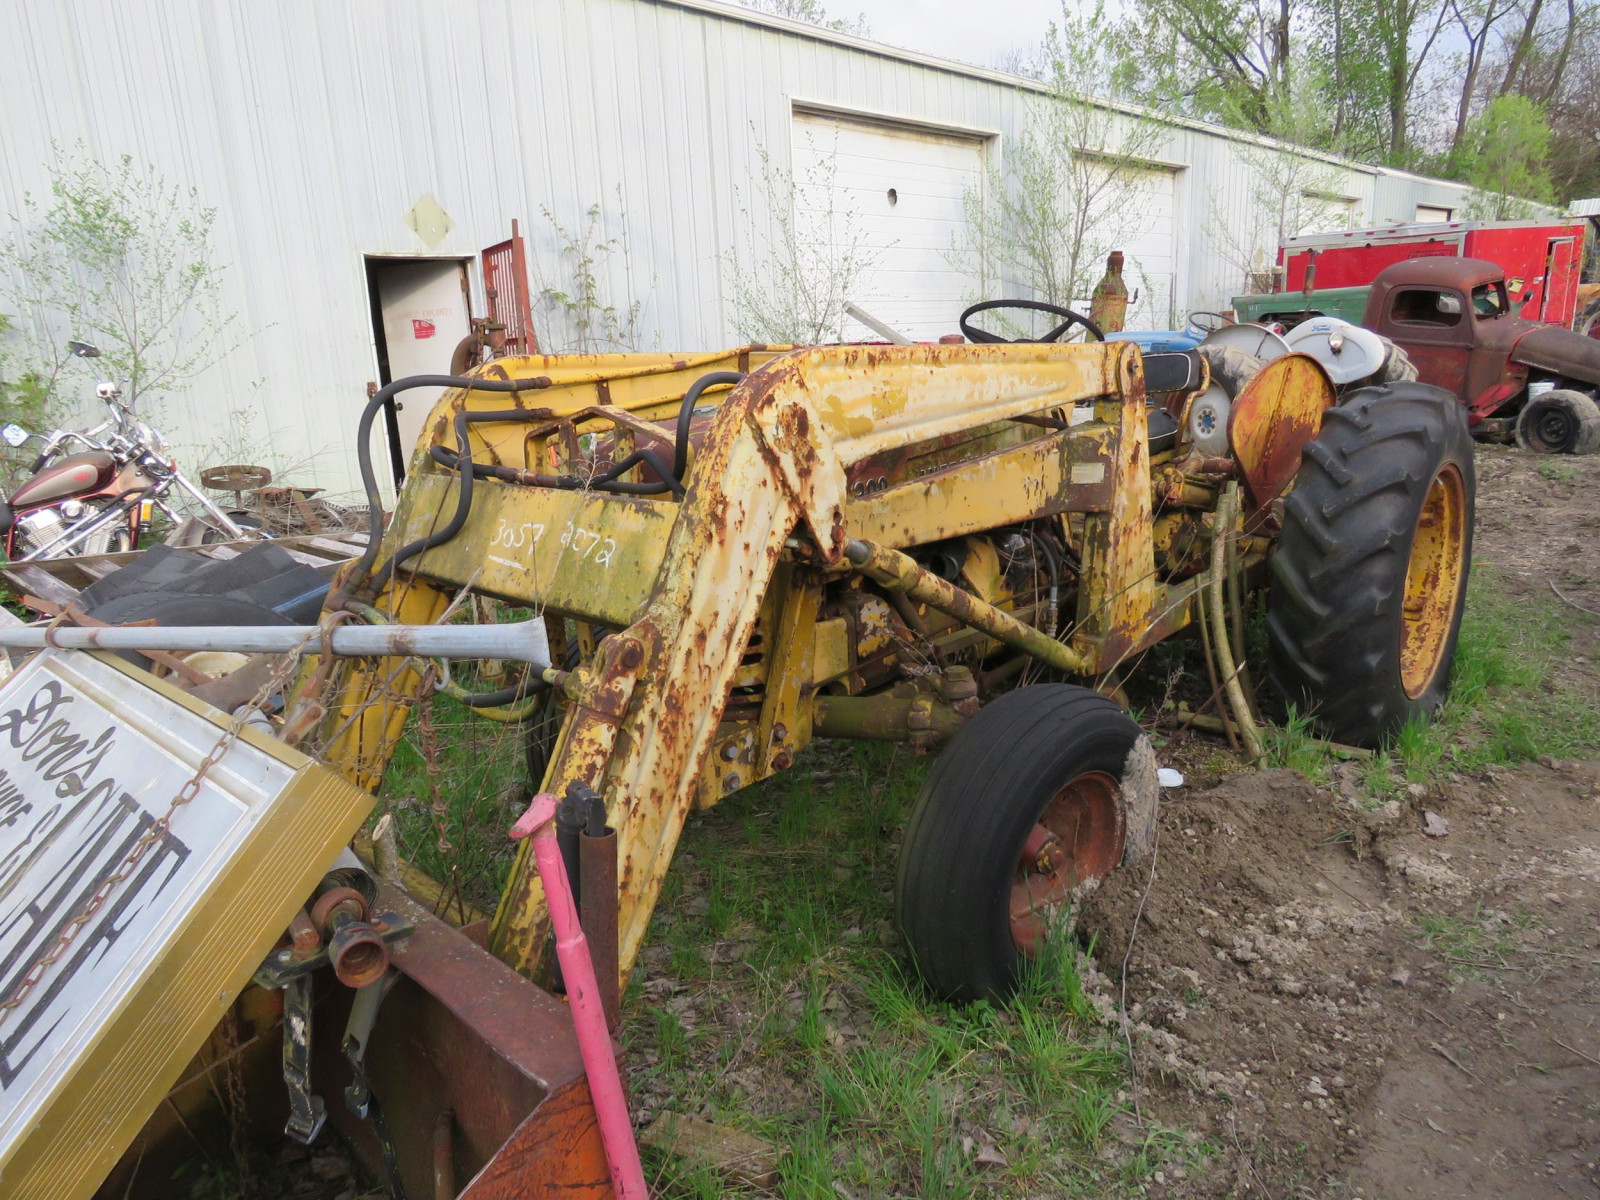 International 300 Tractor - Image 1